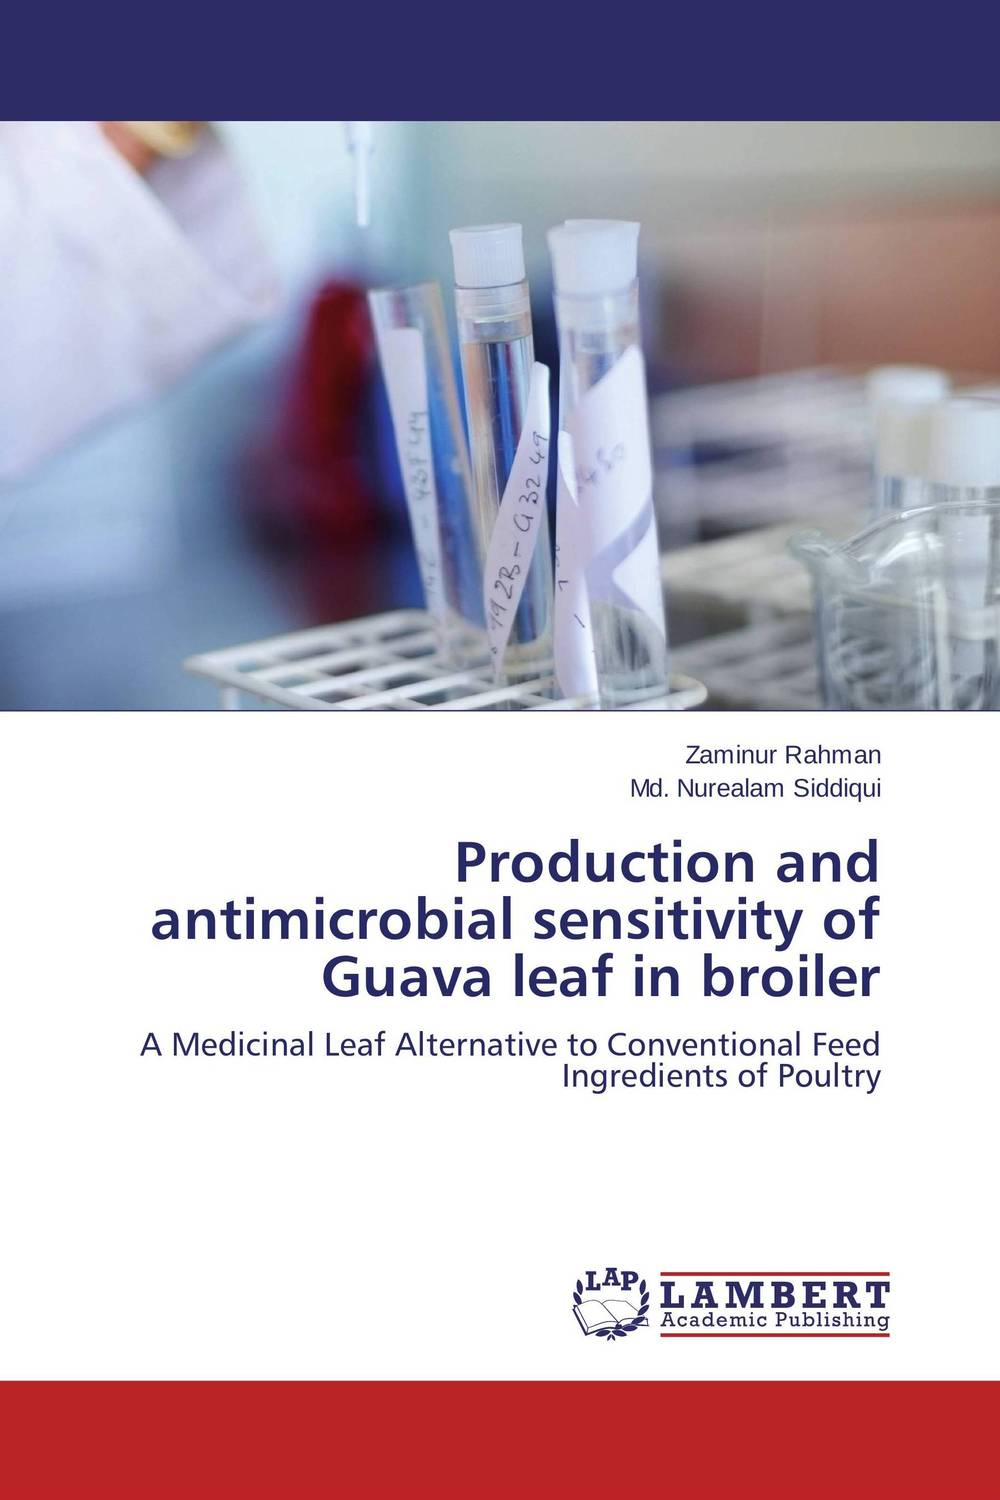 Production and antimicrobial sensitivity of Guava leaf in broiler adding value to the citrus pulp by enzyme biotechnology production